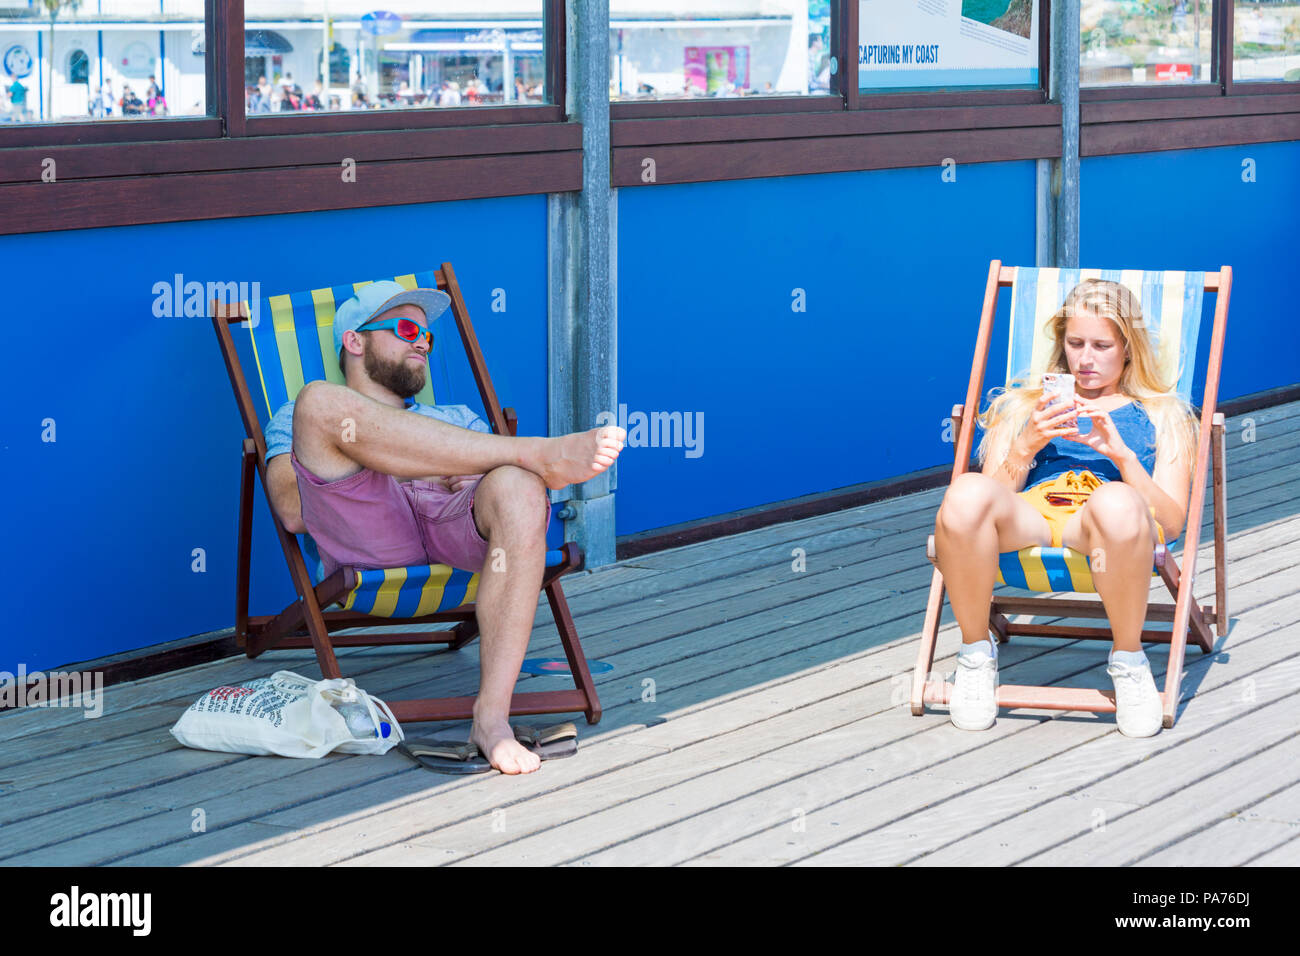 Bournemouth, Dorset, UK. 21st July 2018. UK weather: hot and sunny at Bournemouth beaches, as sunseekers head to the seaside to soak up the sun at the start of the summer holidays. In the shade or in the sun? Couple relaxing in deckchairs on Bournemouth Pier. Credit: Carolyn Jenkins/Alamy Live News - Stock Image